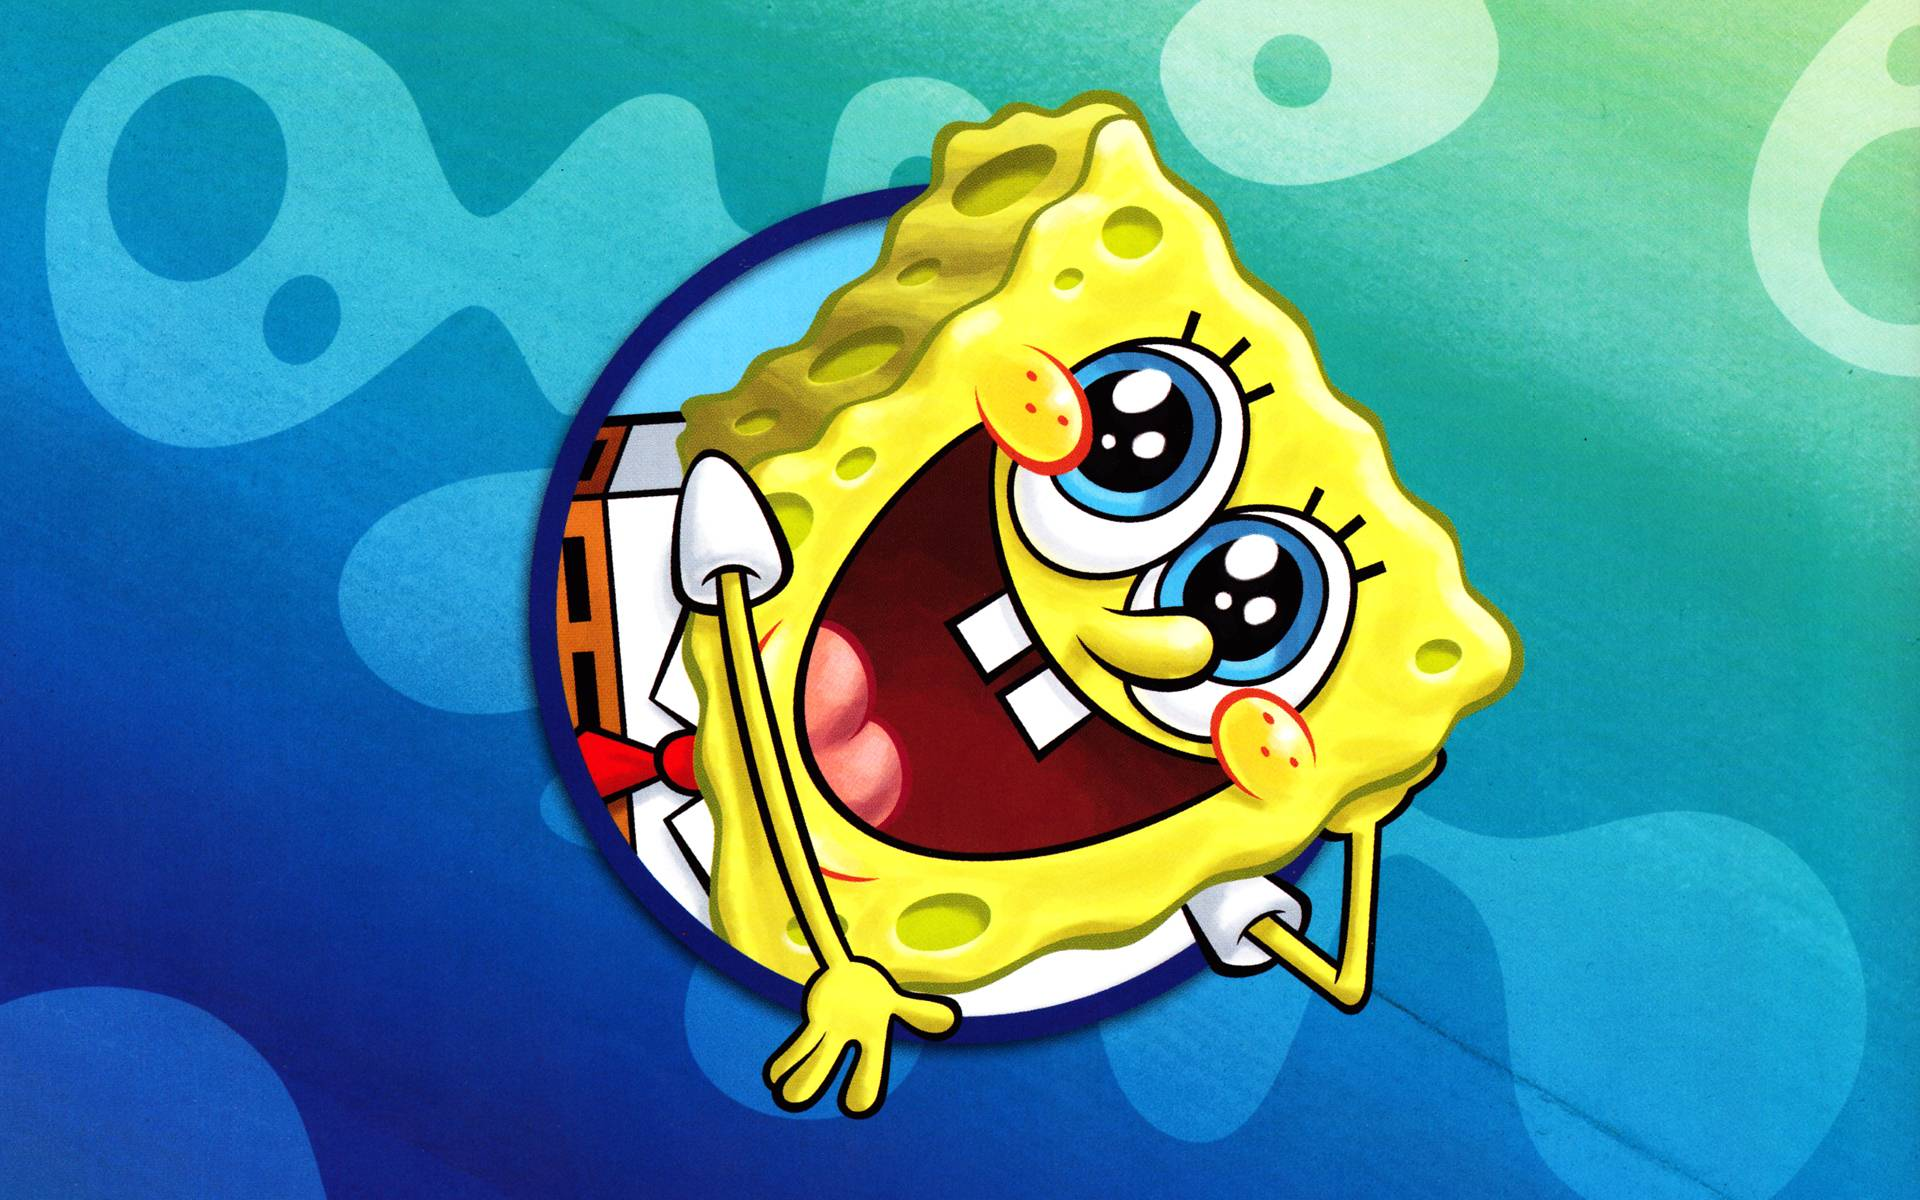 Spongebob Squarepants wallpaper - 1219359